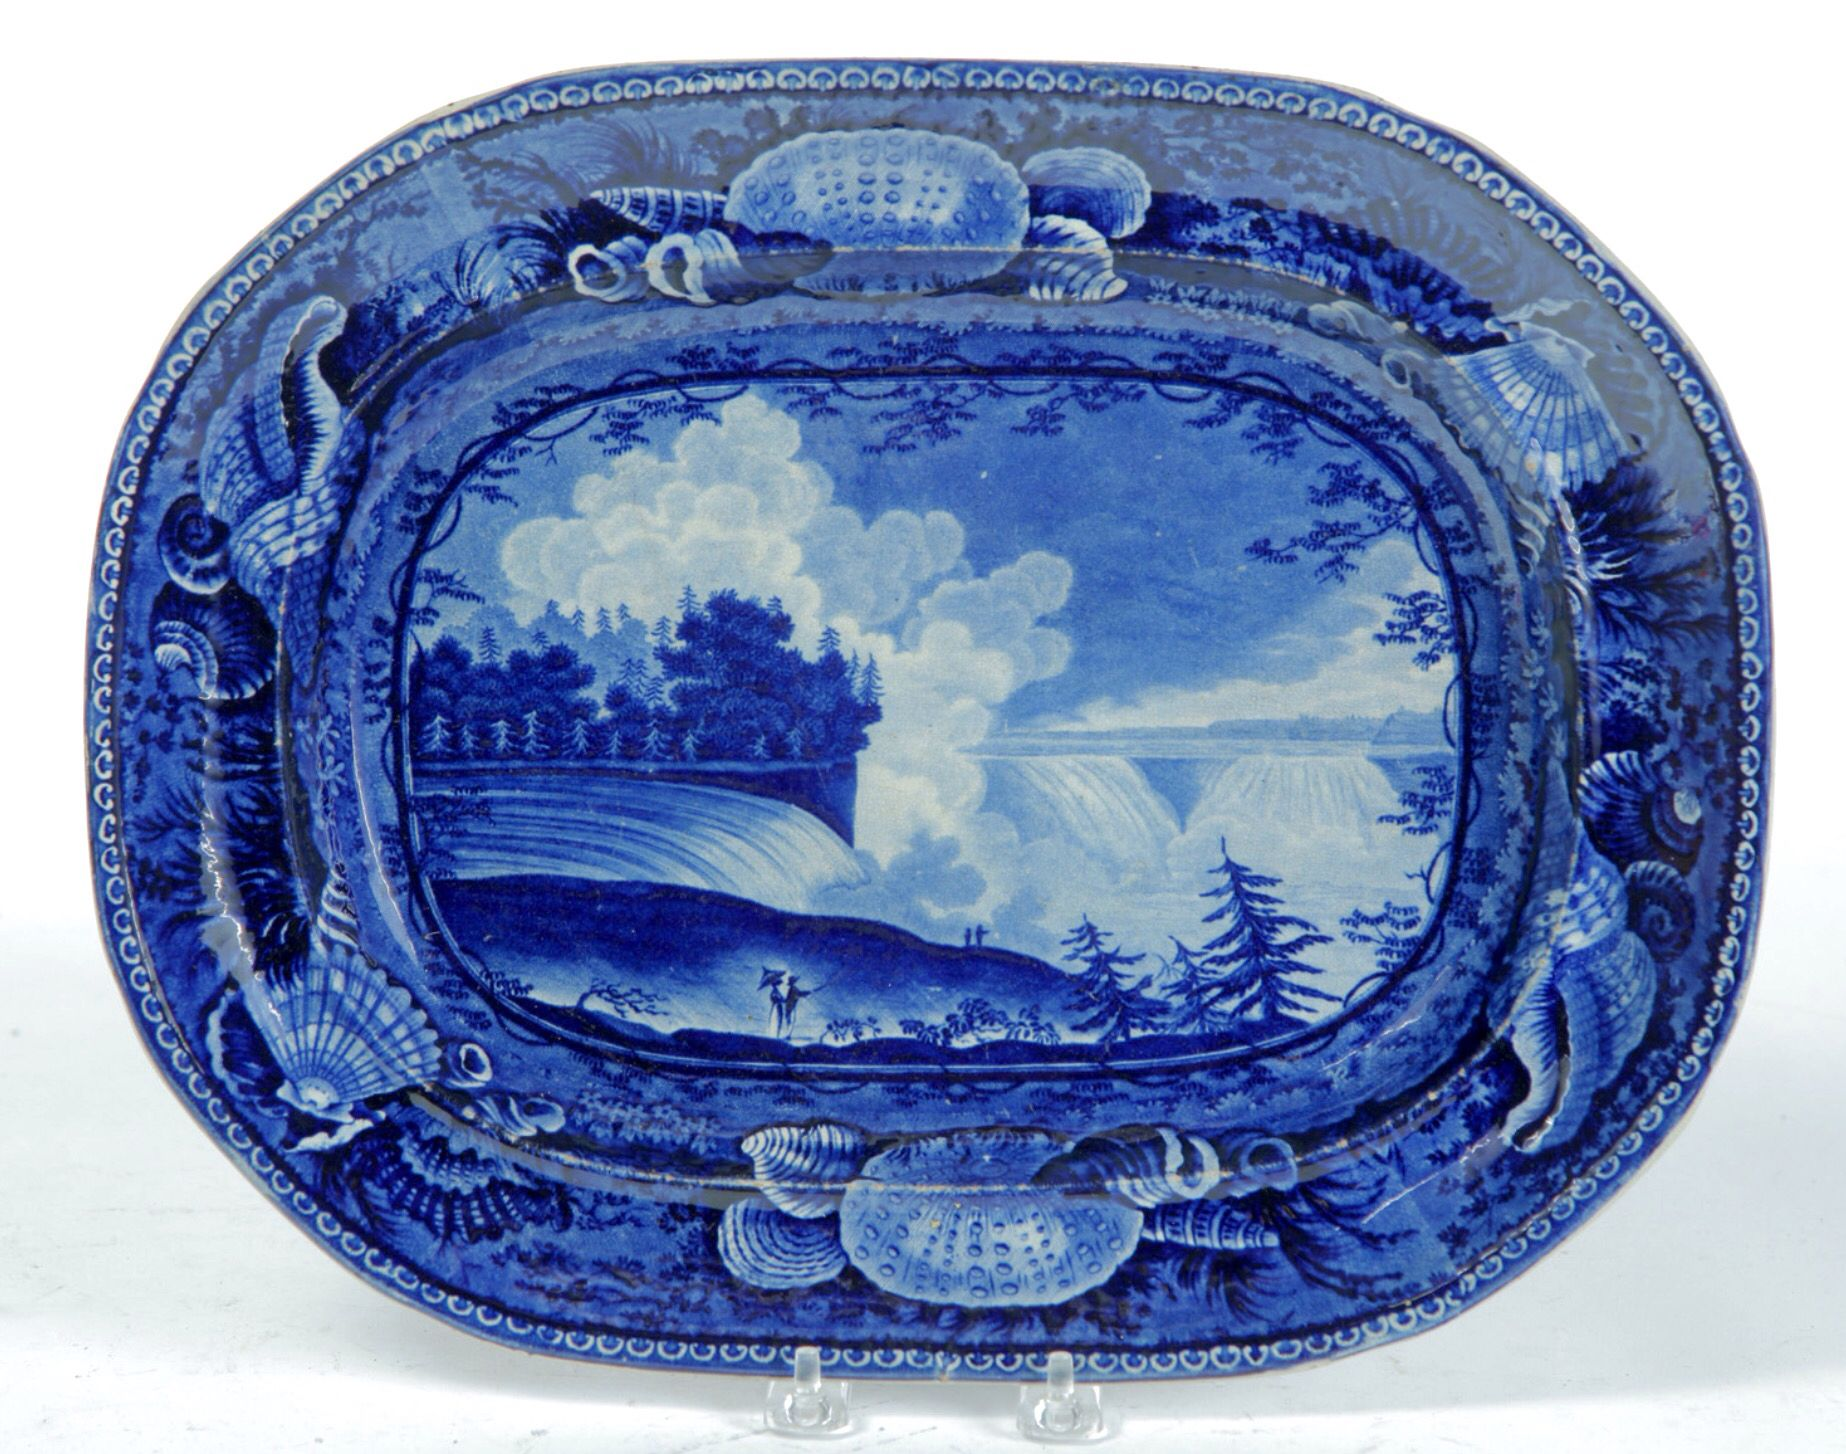 """Garth's Sale 1129 Lot 461 Mar 13 2015.  HISTORICAL BLUE STAFFORDSHIRE PLATTER.  England, 1st half-19th century. Niagara from the American Side impressed Wood & Sons. Shell border. Stains. 11.5"""" x 14.75"""".  Estimate $ 300-600. Sold for $780.   Wear, knife scratches, on the front side, the wear is worst on the high spots (interior rim), and on glaze line that follows the ridge on the near side of the falls and on the left falls as well. The back side displays crazing and staining, and has a 5""""…"""